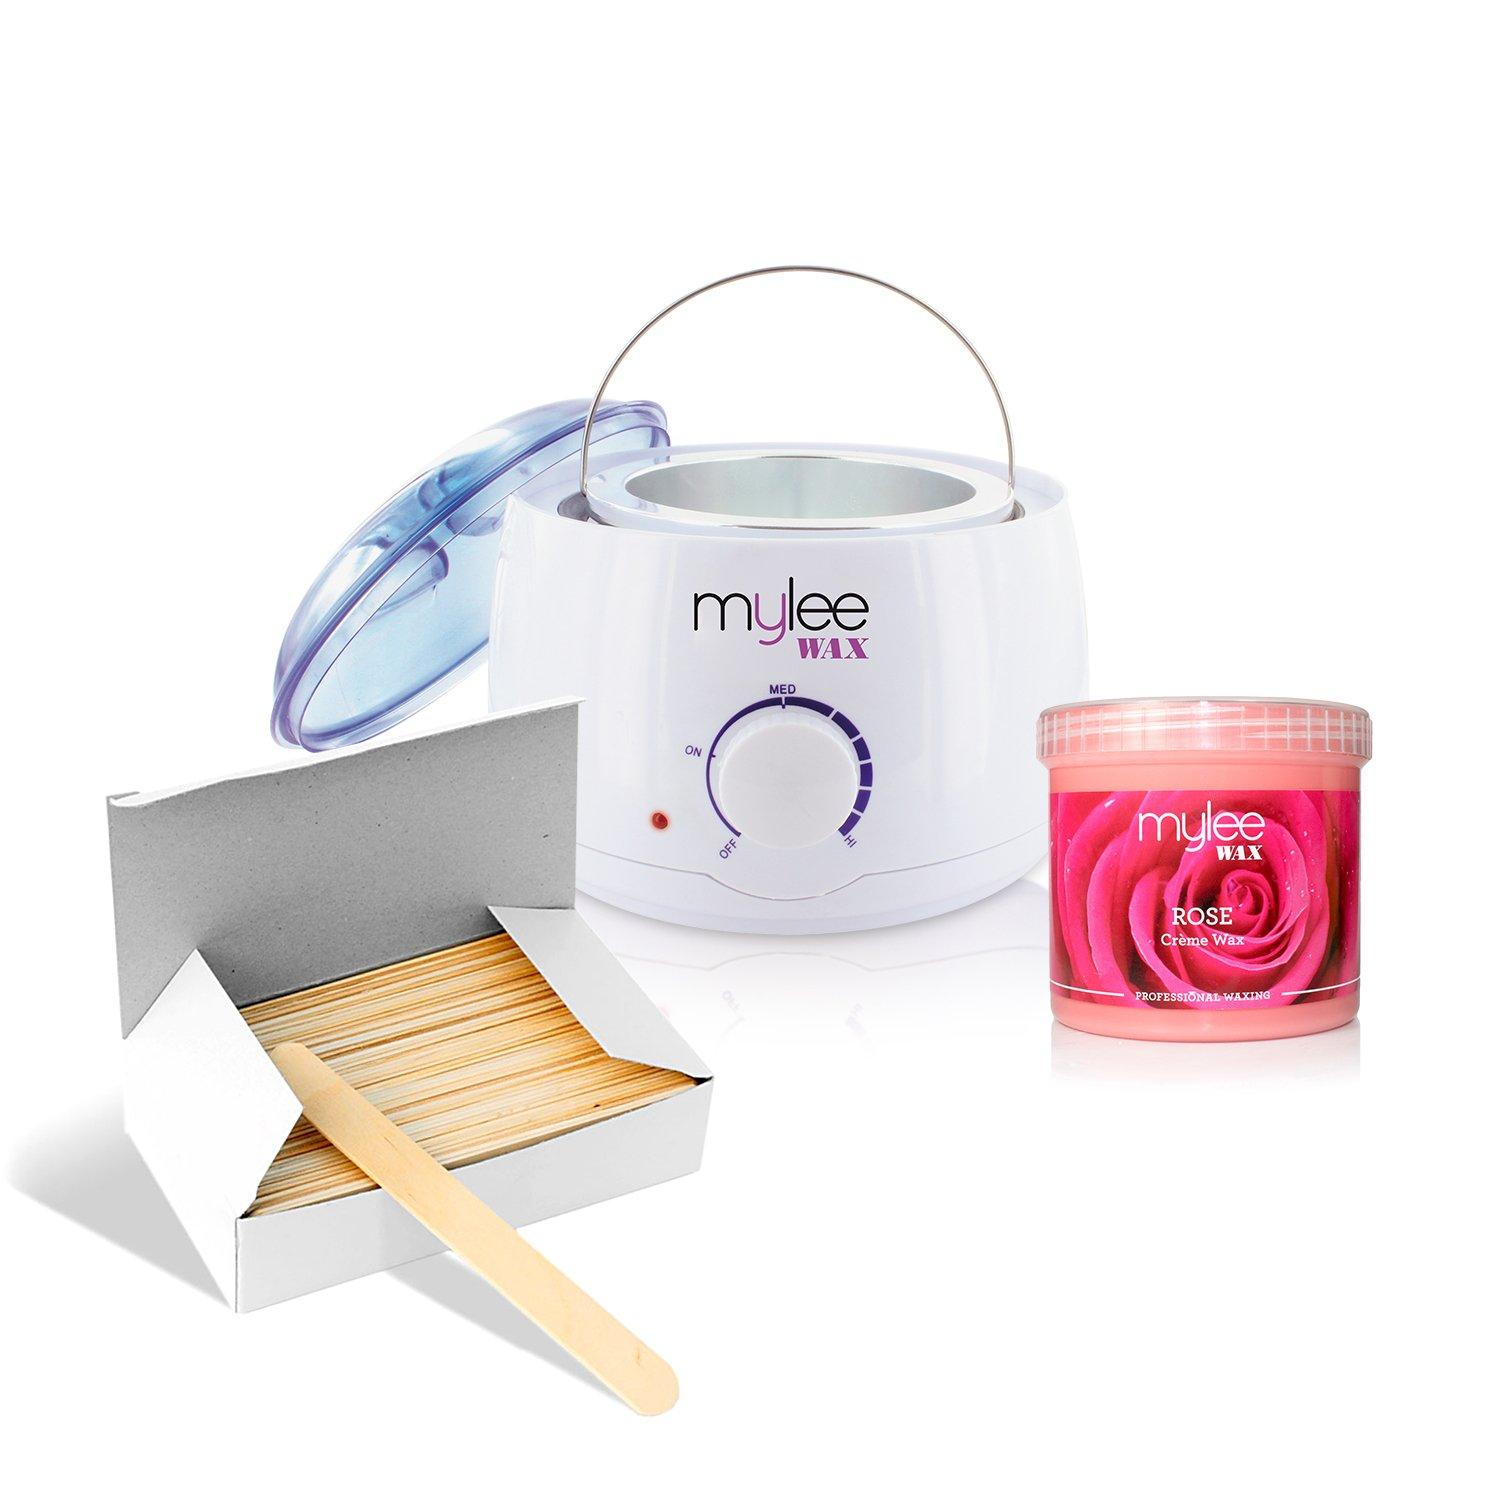 Mylee White Thermostatic Control Wax Heater & Mylee 450g Rose Soft Wax Kit NEW Just Beauty